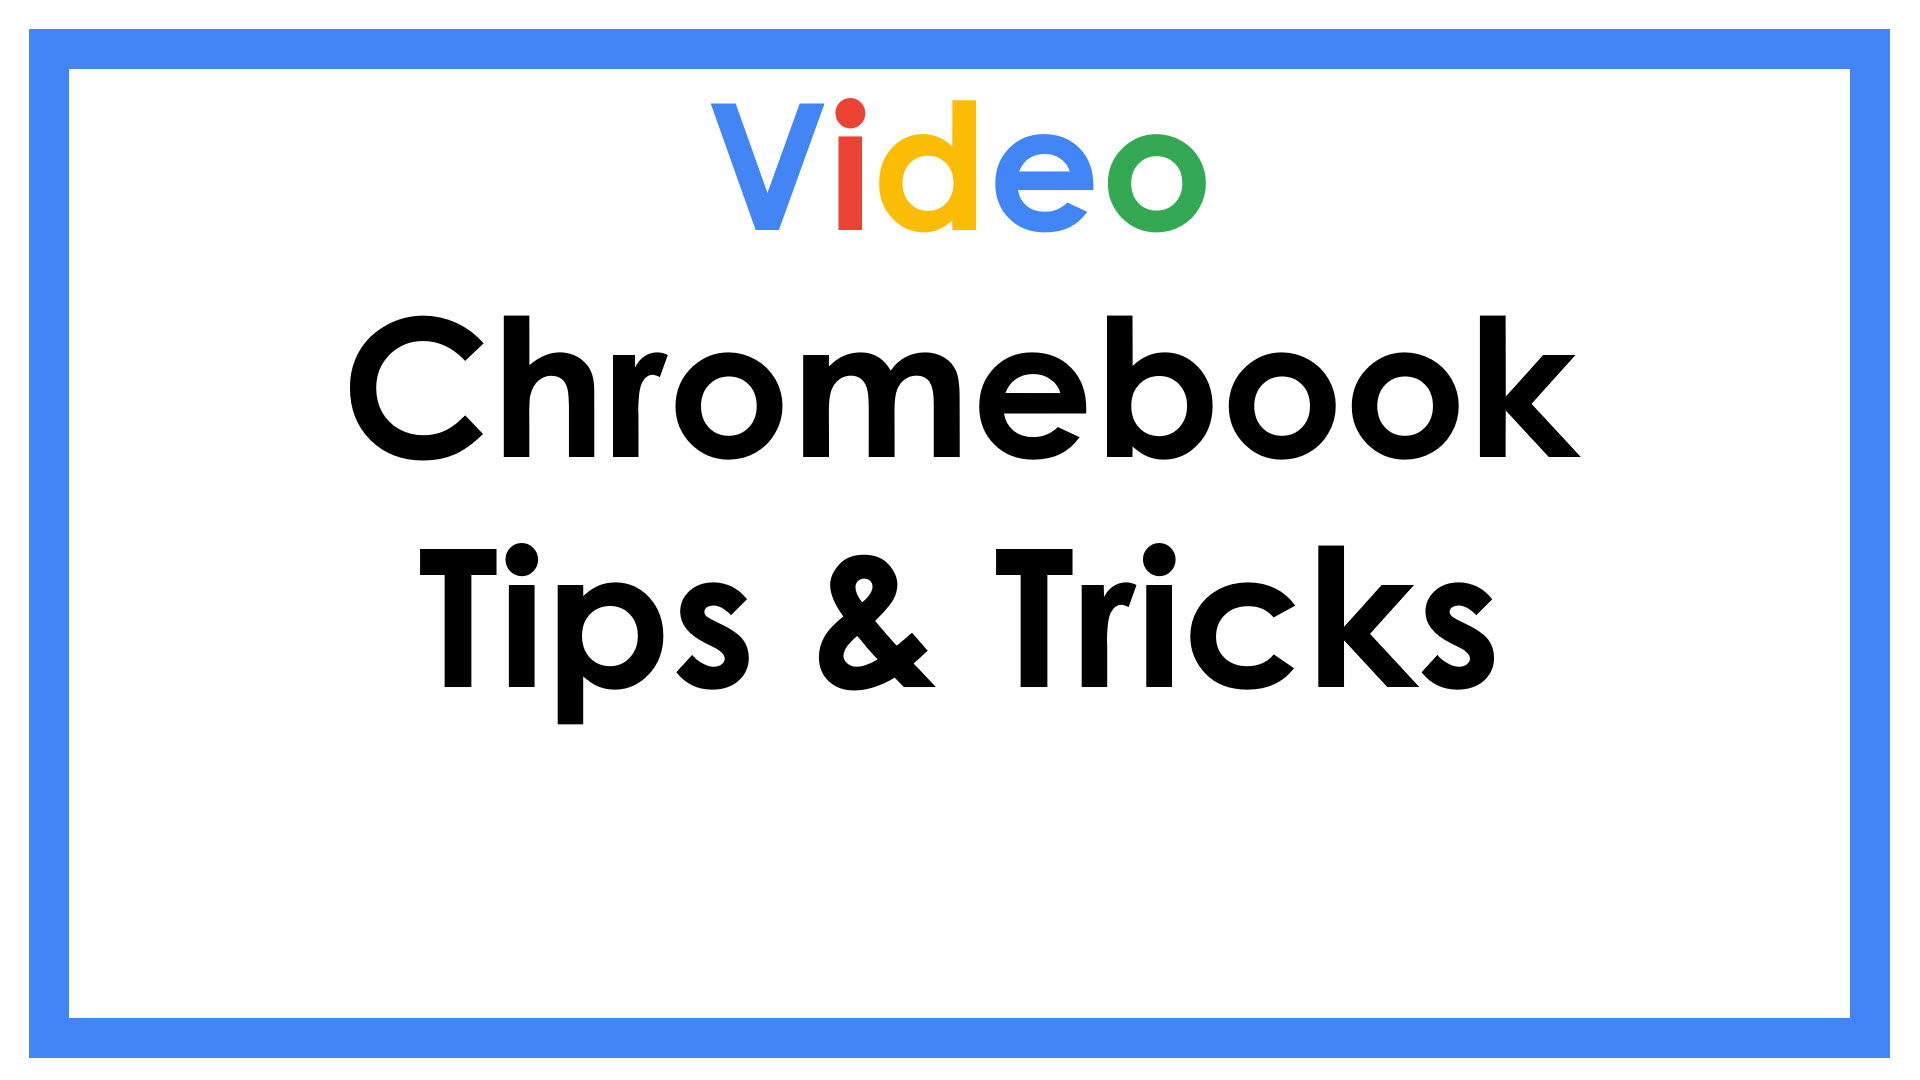 Chromebook Tips & Tricks